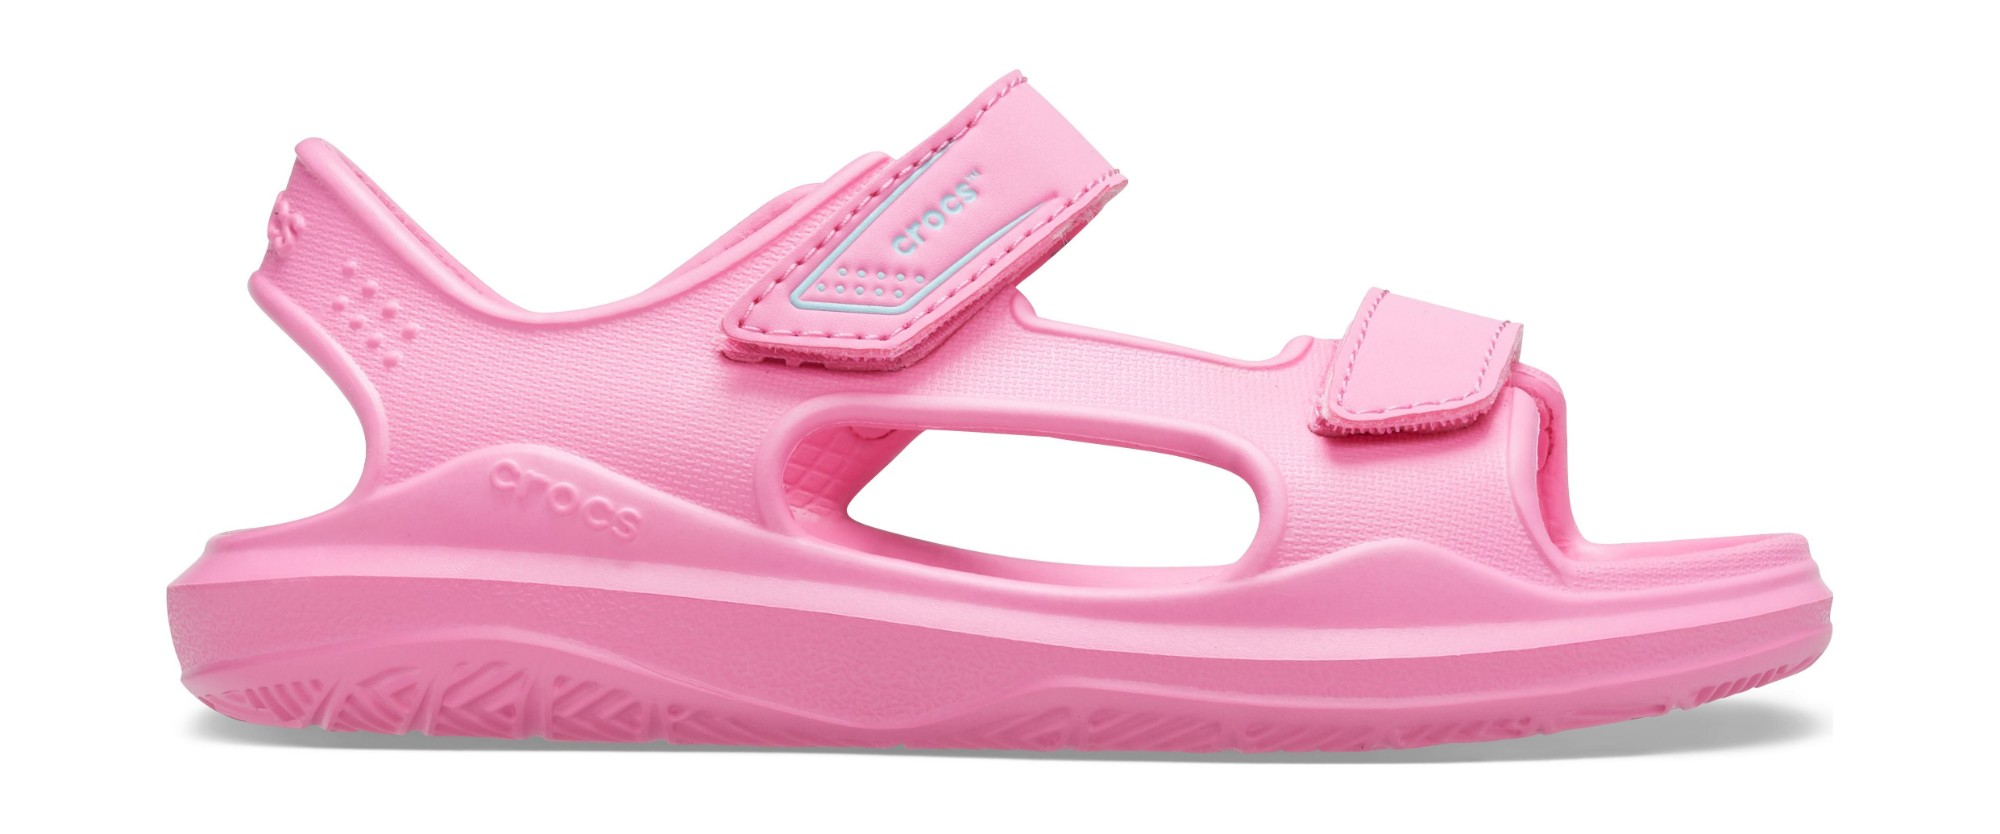 Crocs™ Swiftwater Expedition Sandal Kids Pink Lemonade/Pink Lemonade 25